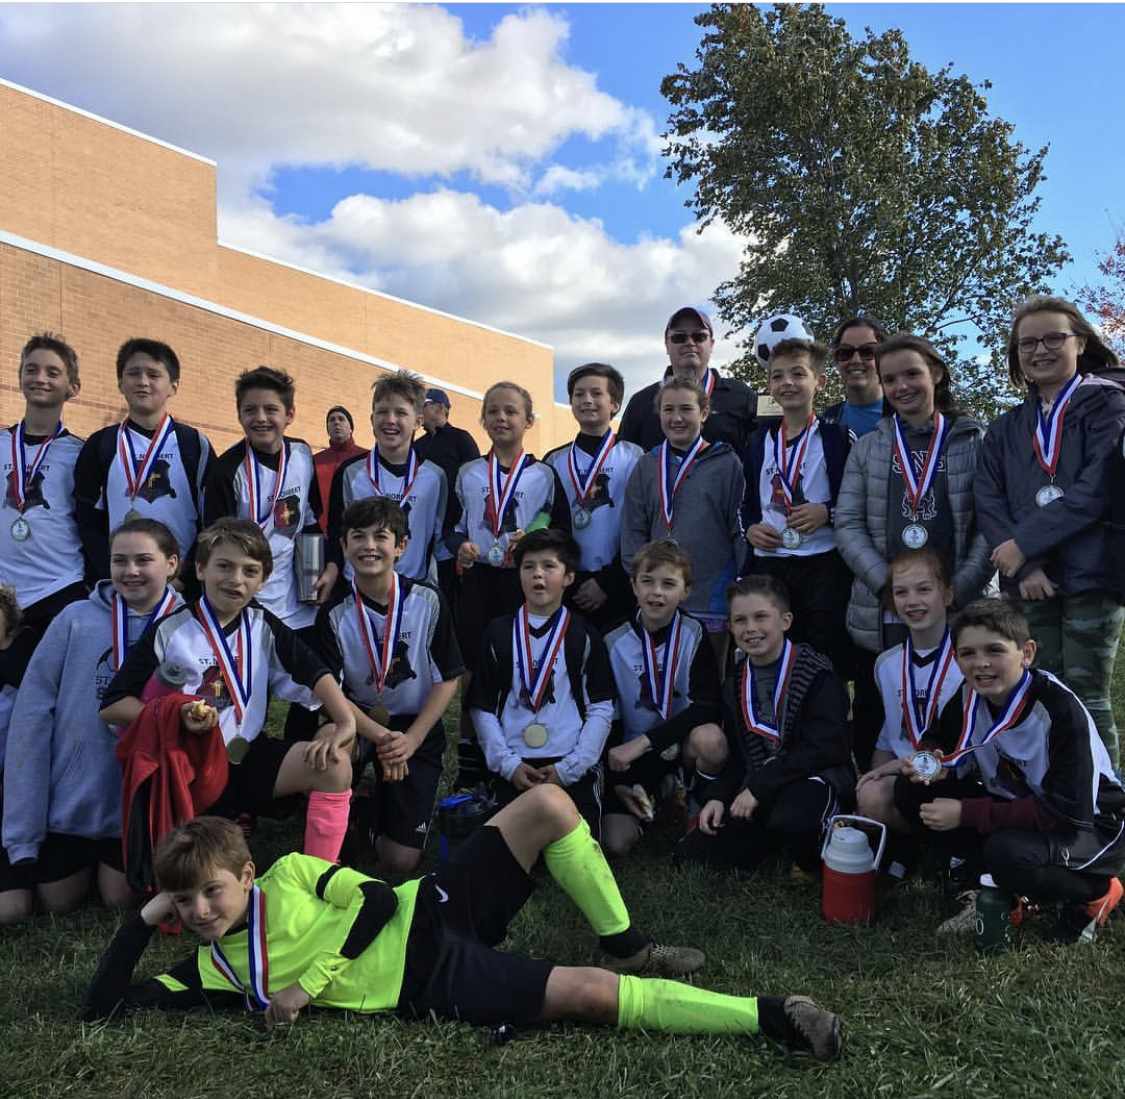 image1 8 - What a Season for Fall CYO Sports!